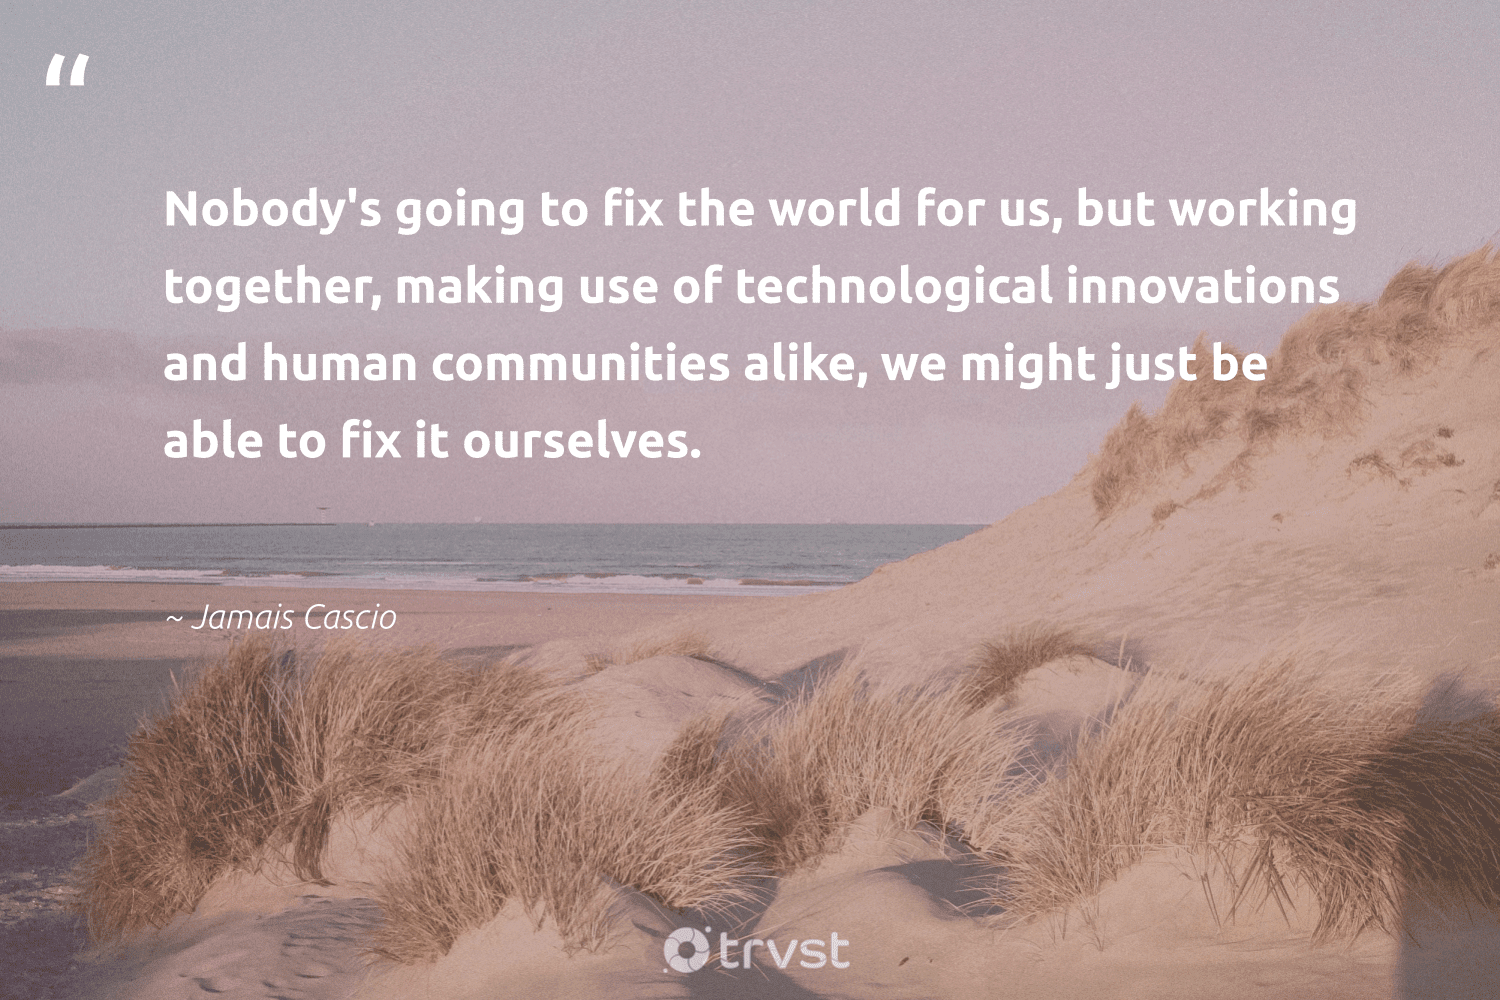 """""""Nobody's going to fix the world for us, but working together, making use of technological innovations and human communities alike, we might just be able to fix it ourselves.""""  - Jamais Cascio #trvst #quotes #workingtogether #communities #softskills #beinspired #nevergiveup #impact #futureofwork #takeaction #begreat #thinkgreen"""